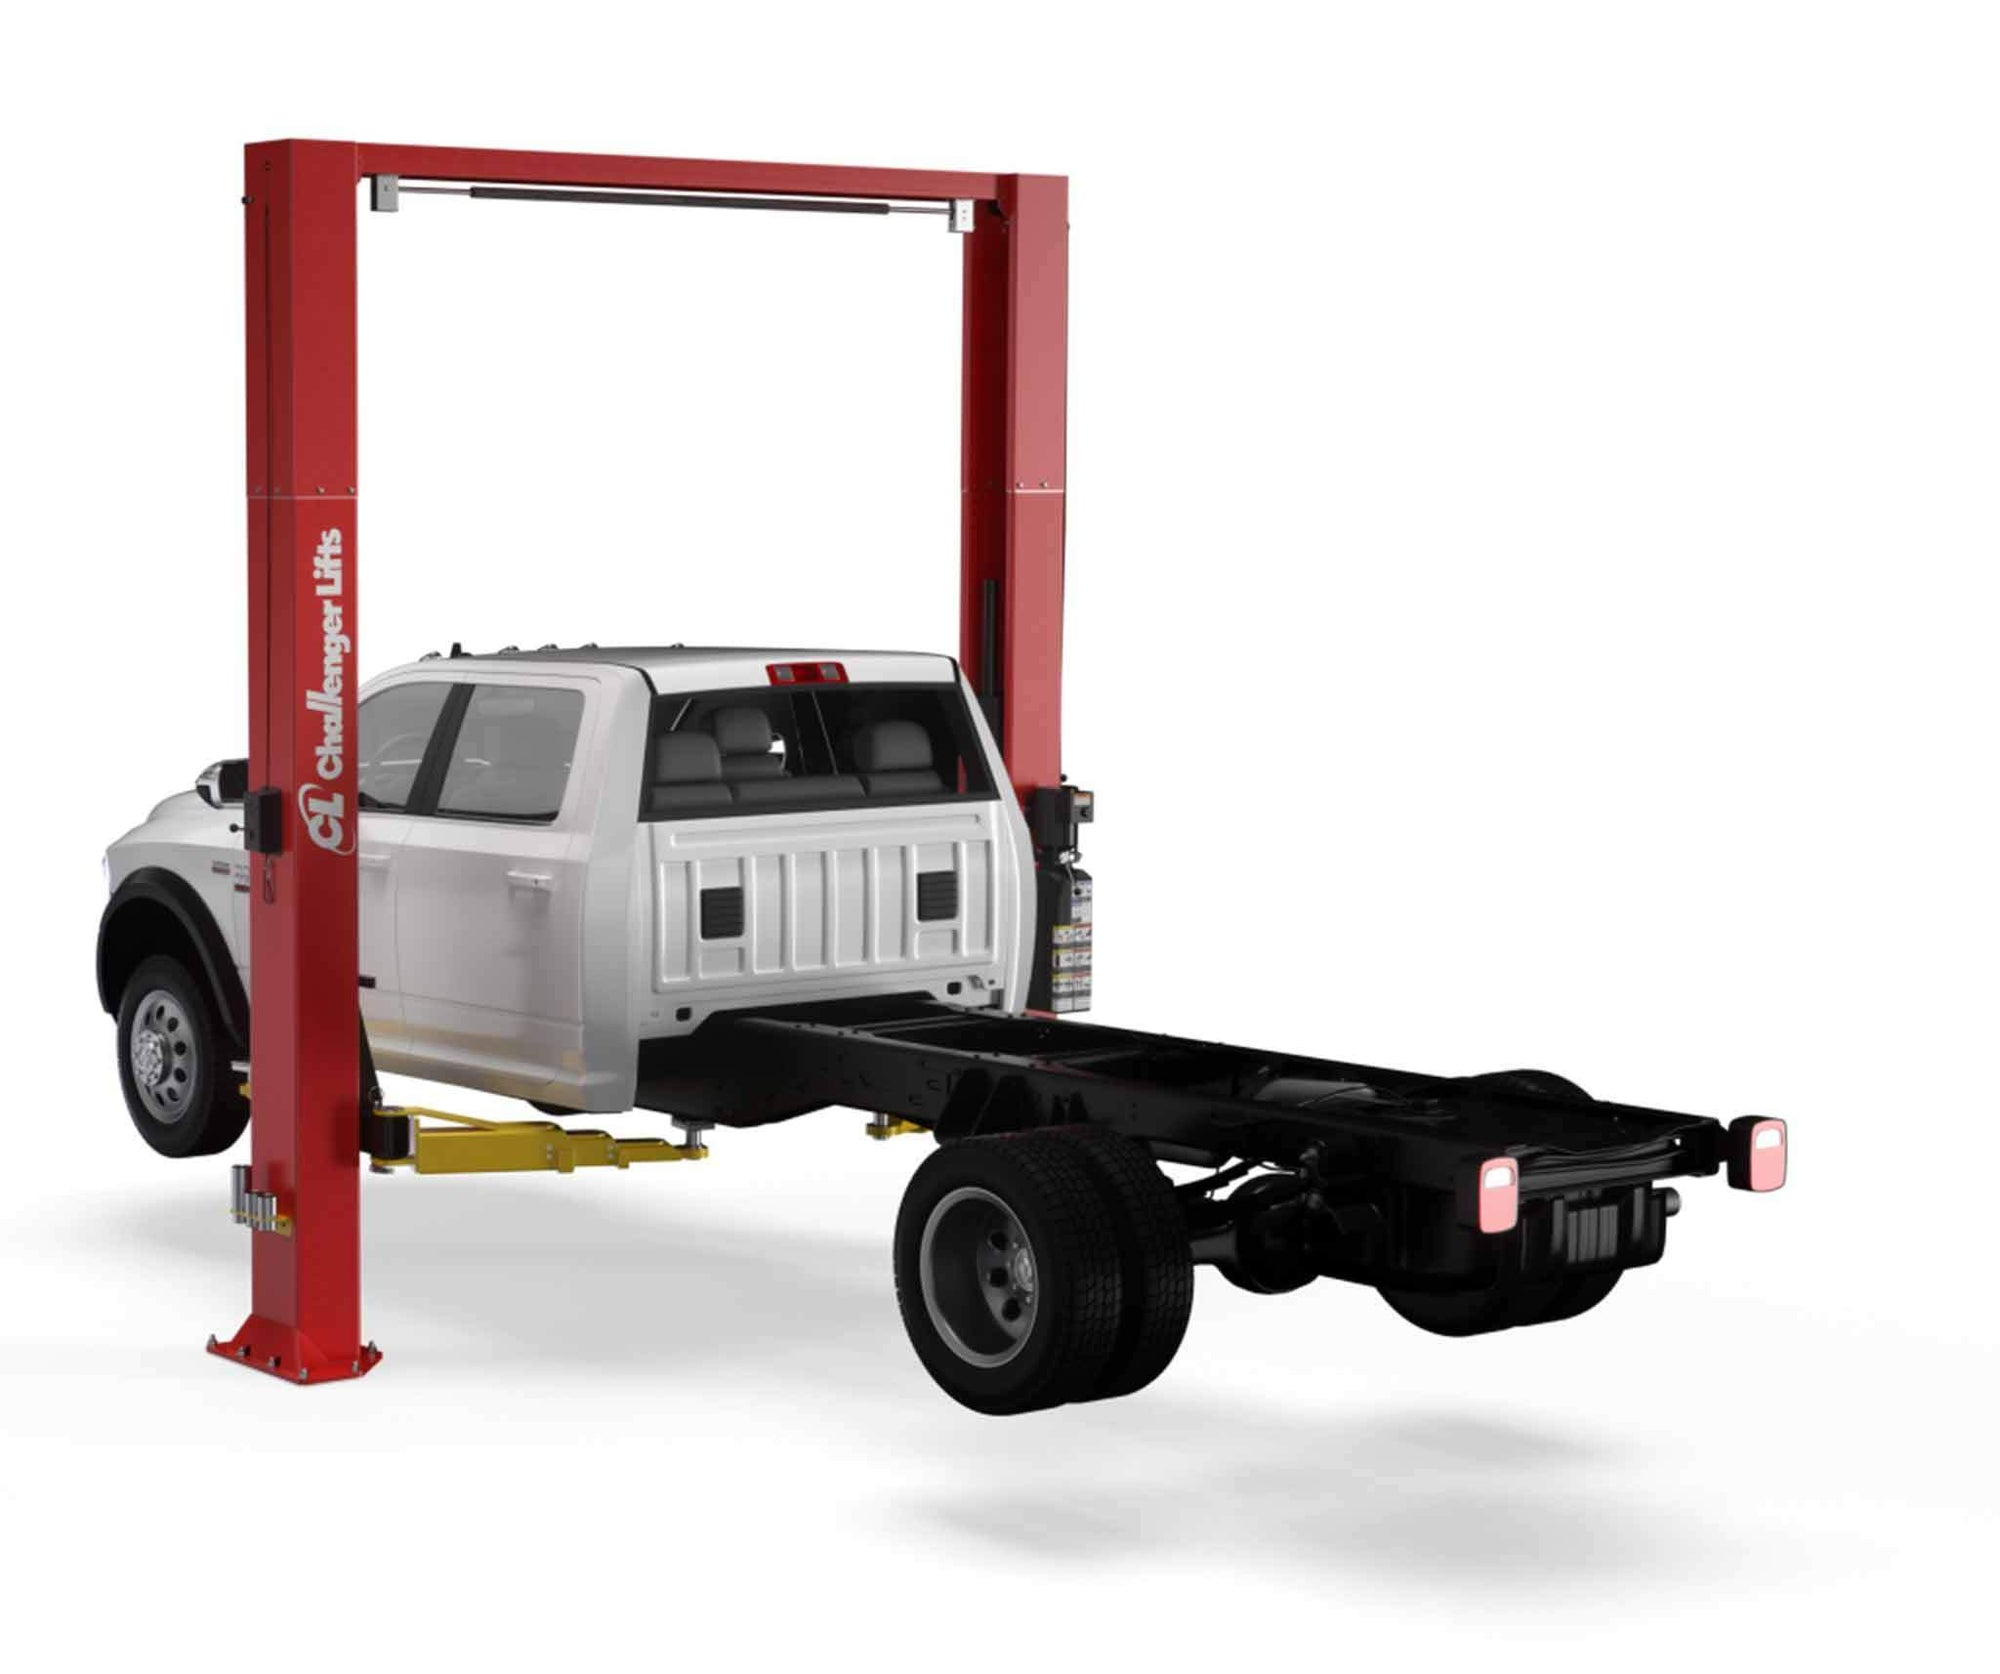 CL12-Challenger-12000-lb-2-Post-Lift-Rack